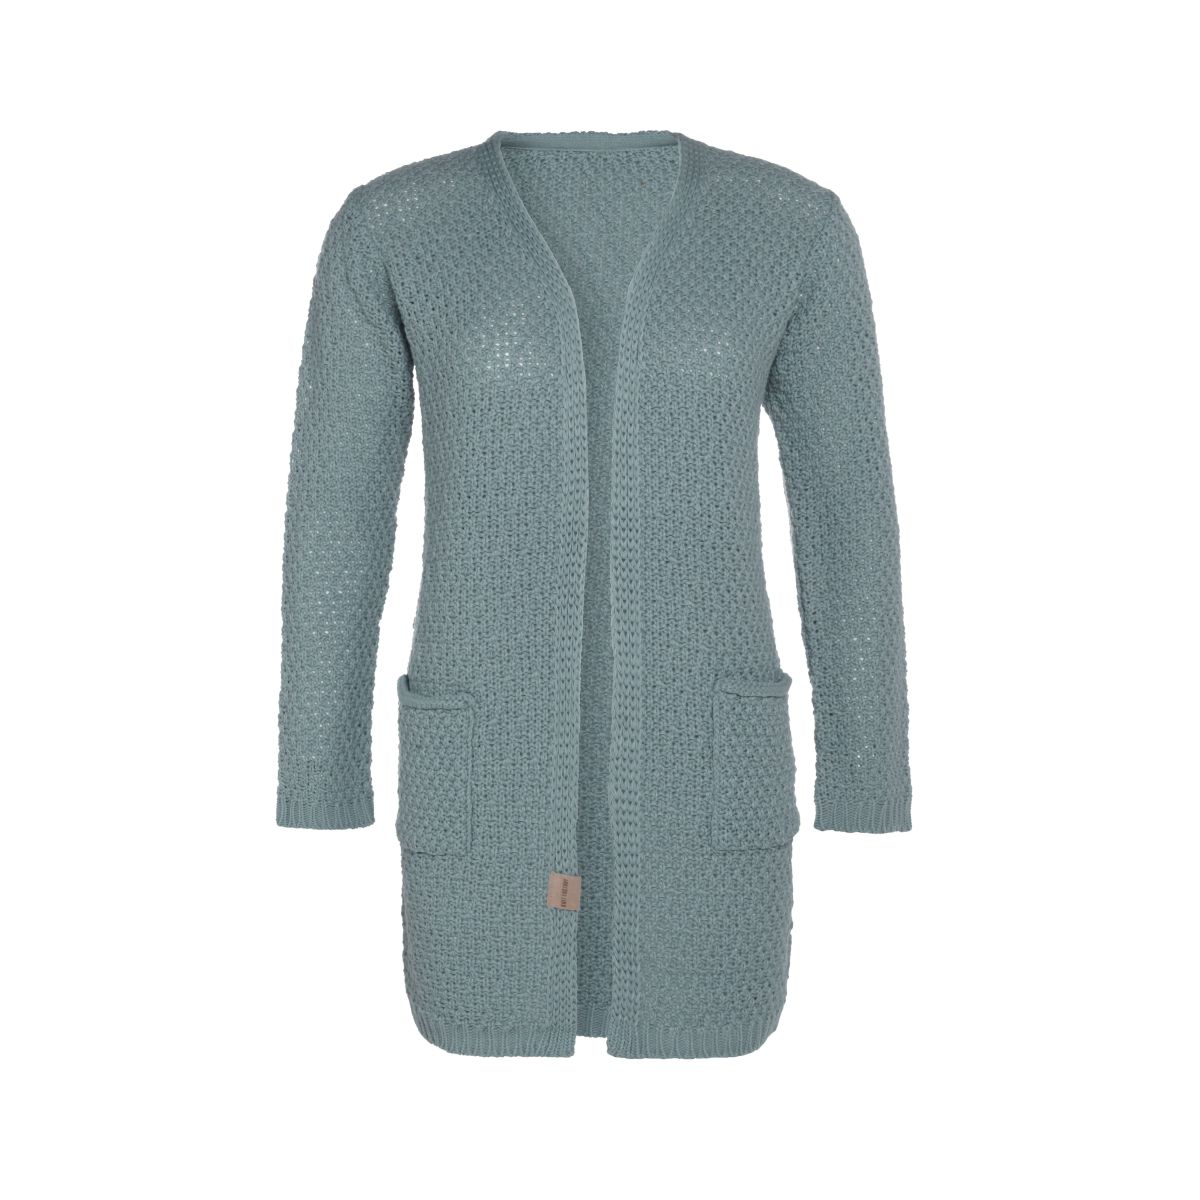 luna knitted cardigan stone green 4042 with side pockets